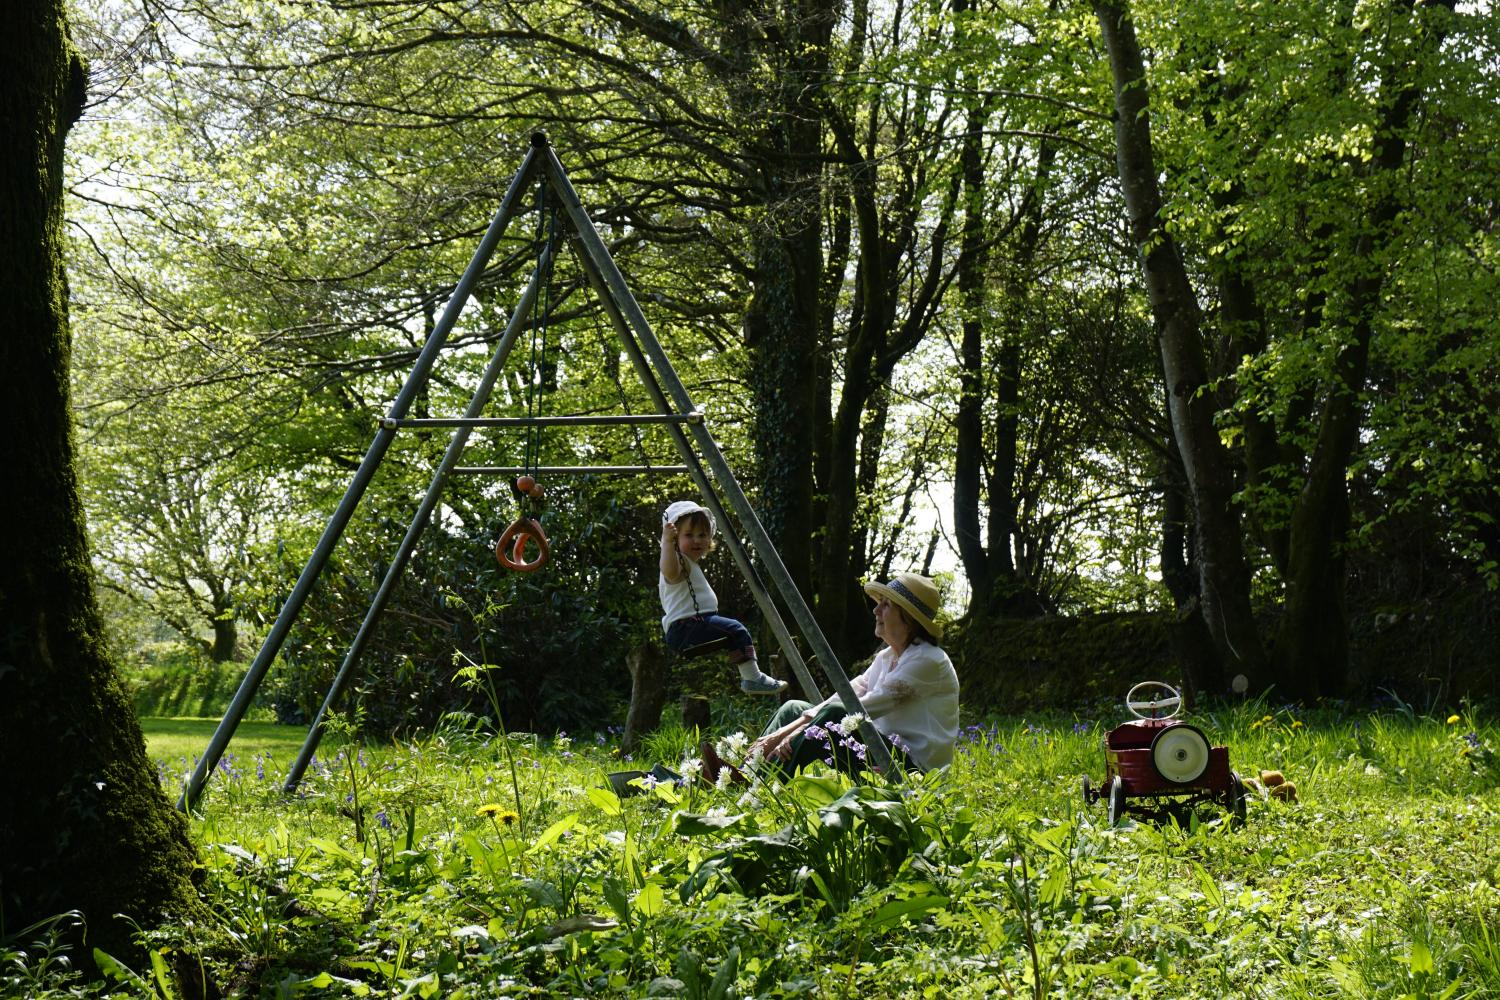 Swings and play in the garden woodland